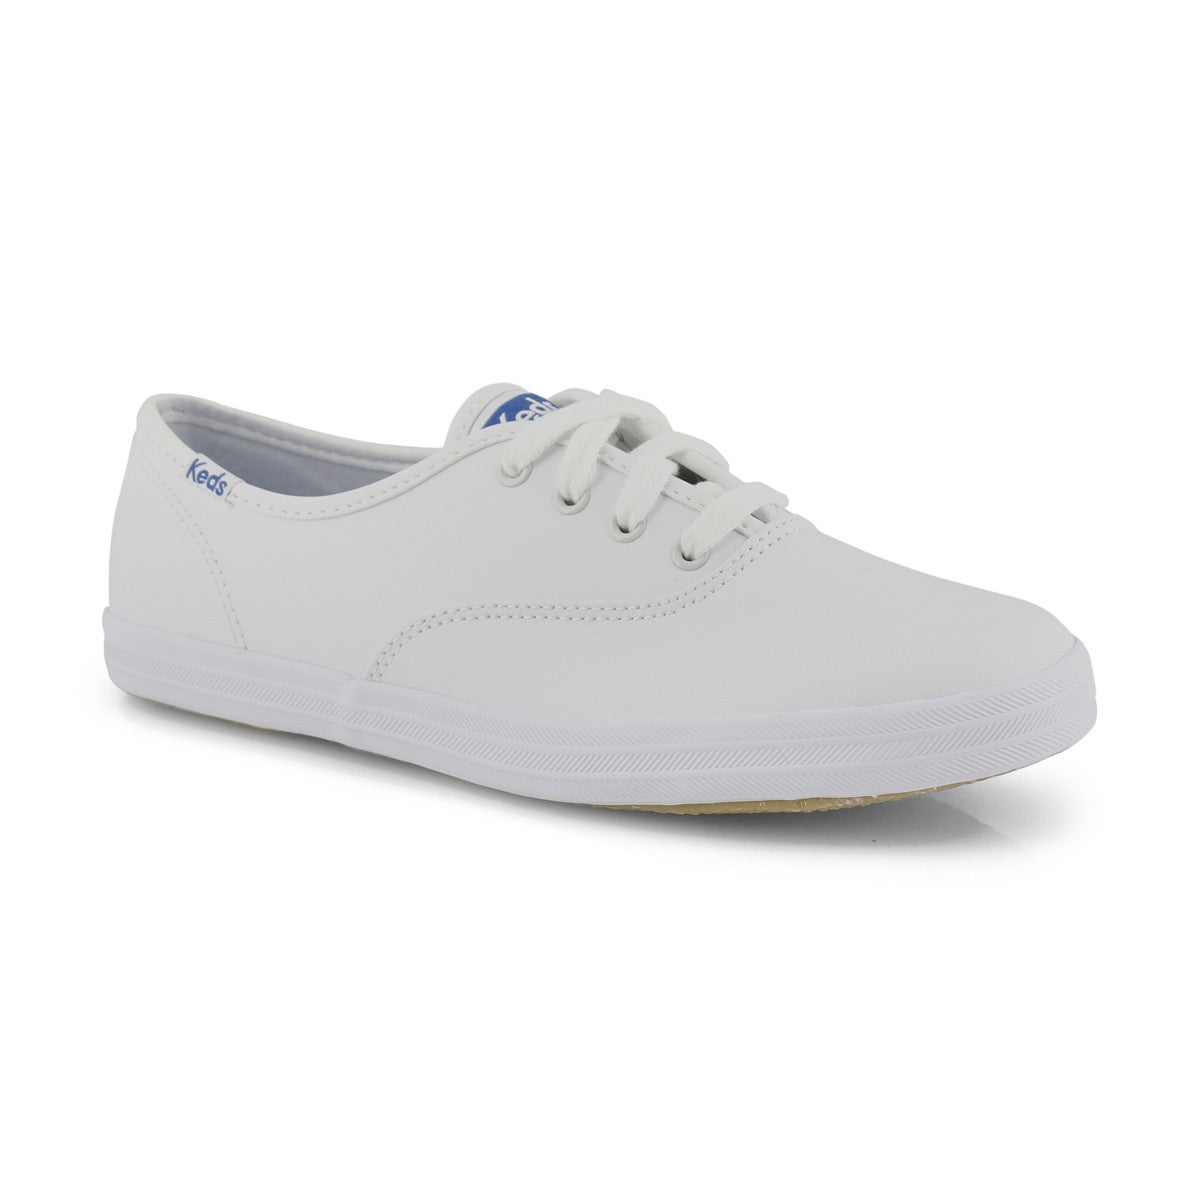 Kids' CHAMPION white leather sneakers